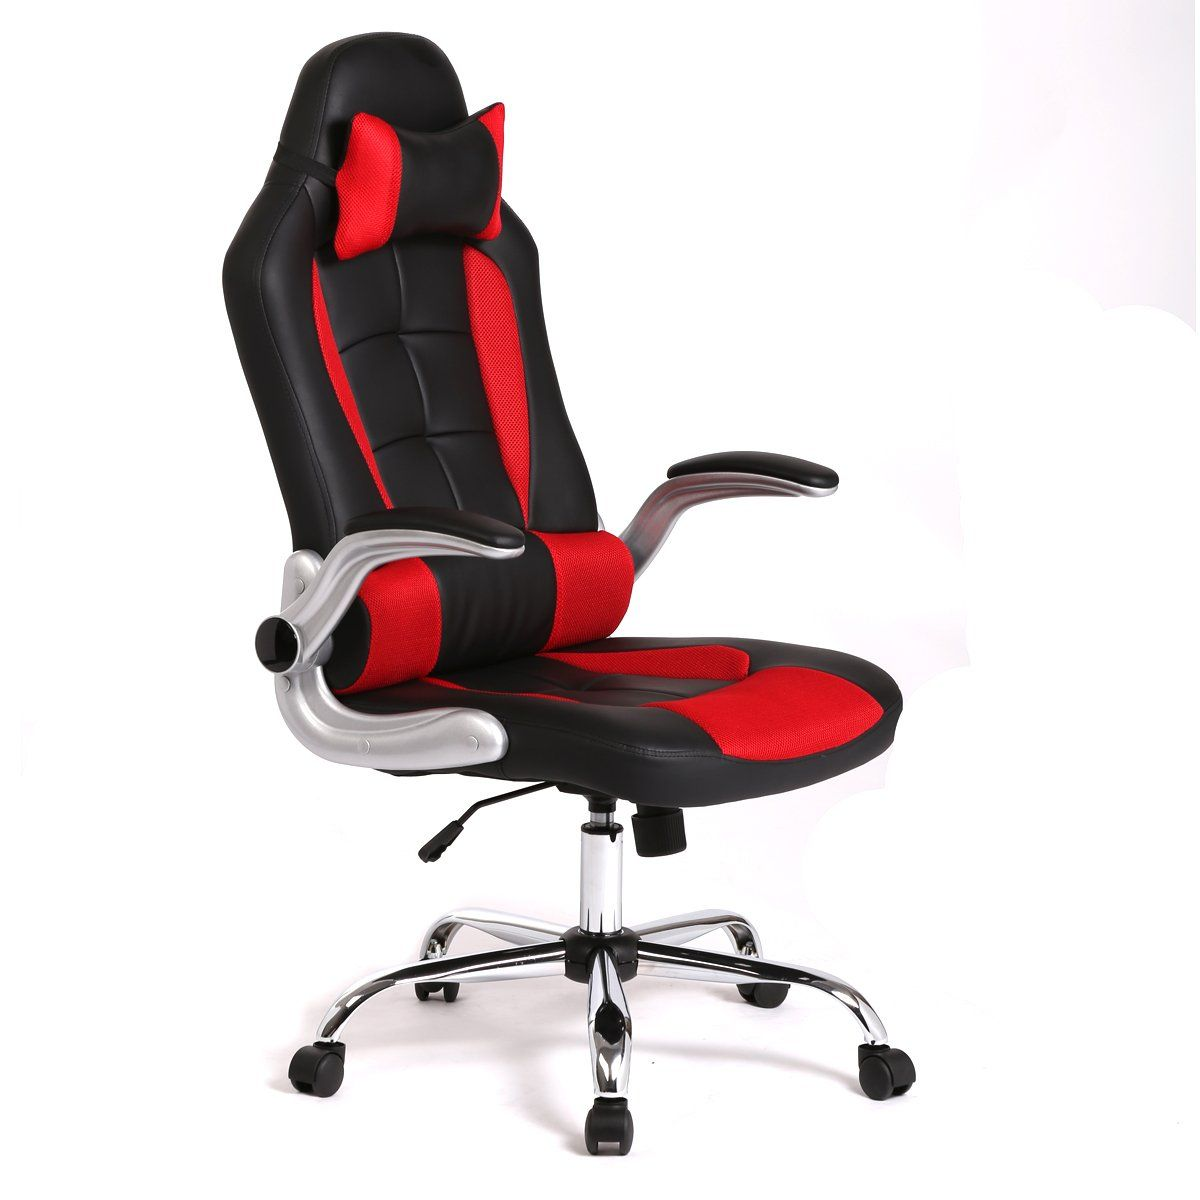 Office Chair High Seat Soccer Mom Chairs New Back Race Car Style Bucket Desk Gaming